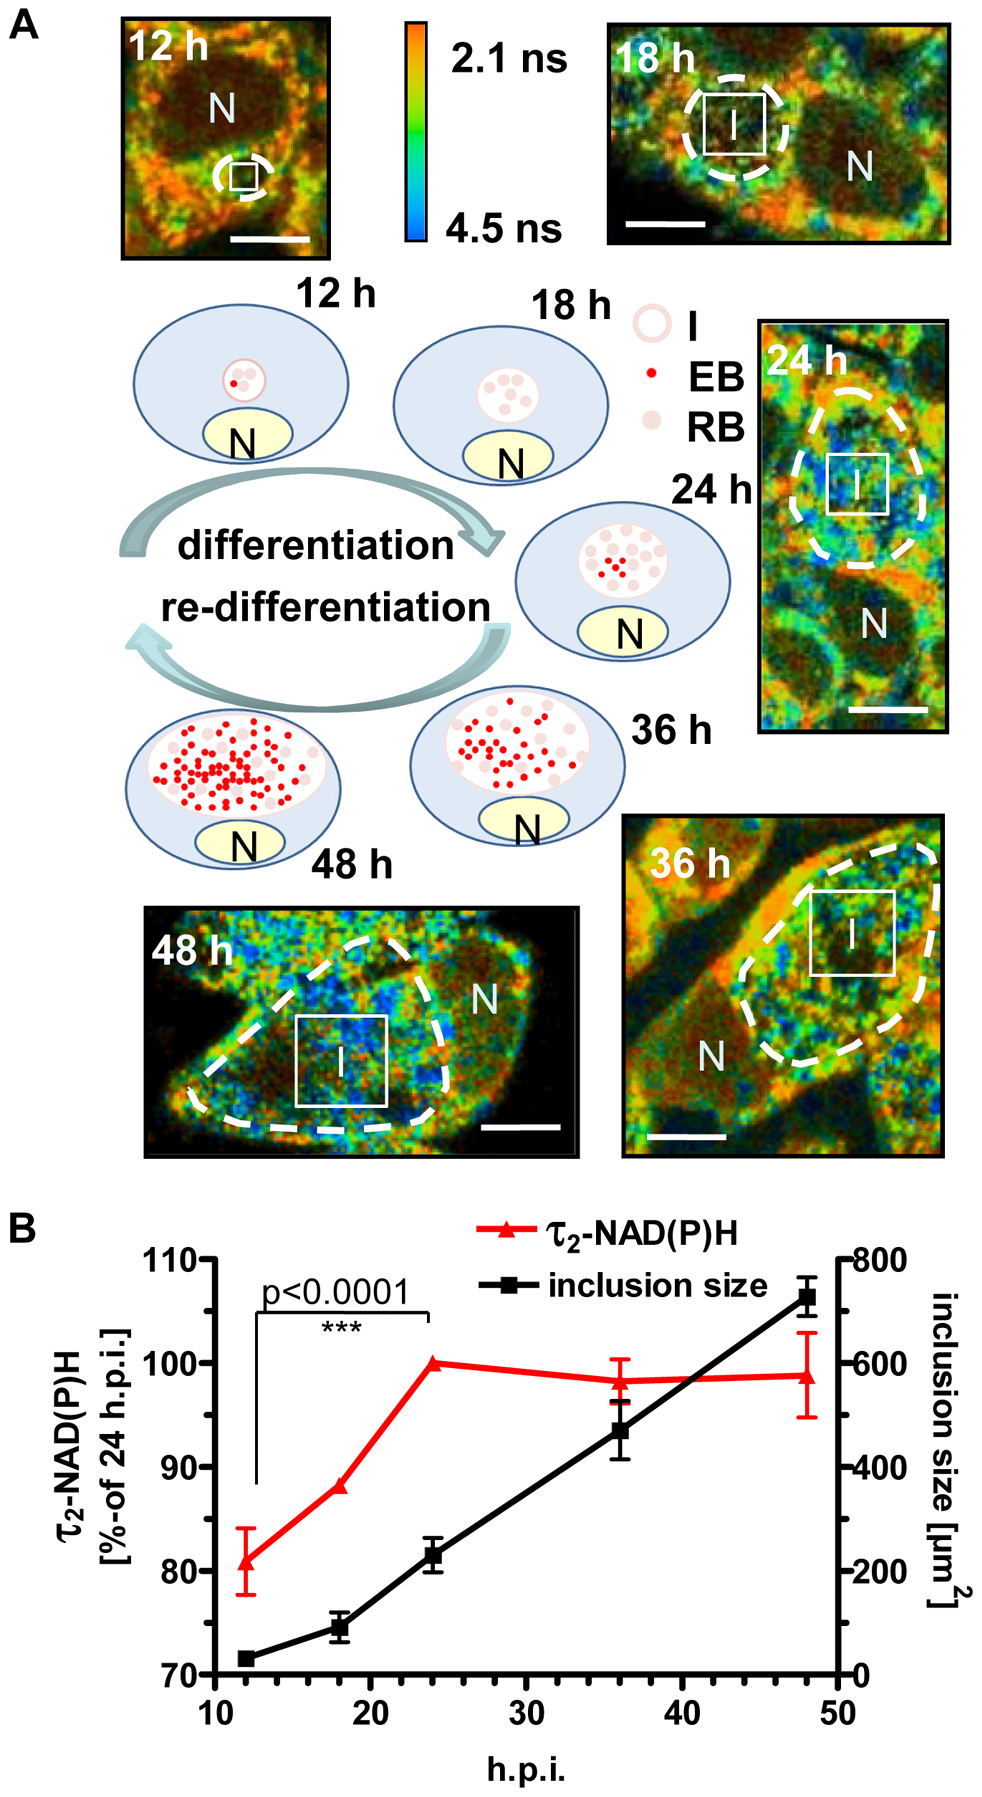 Changes of τ<sub>2</sub>-NAD(P)H inside the chlamydial inclusions during the intracellular developmental cycle.